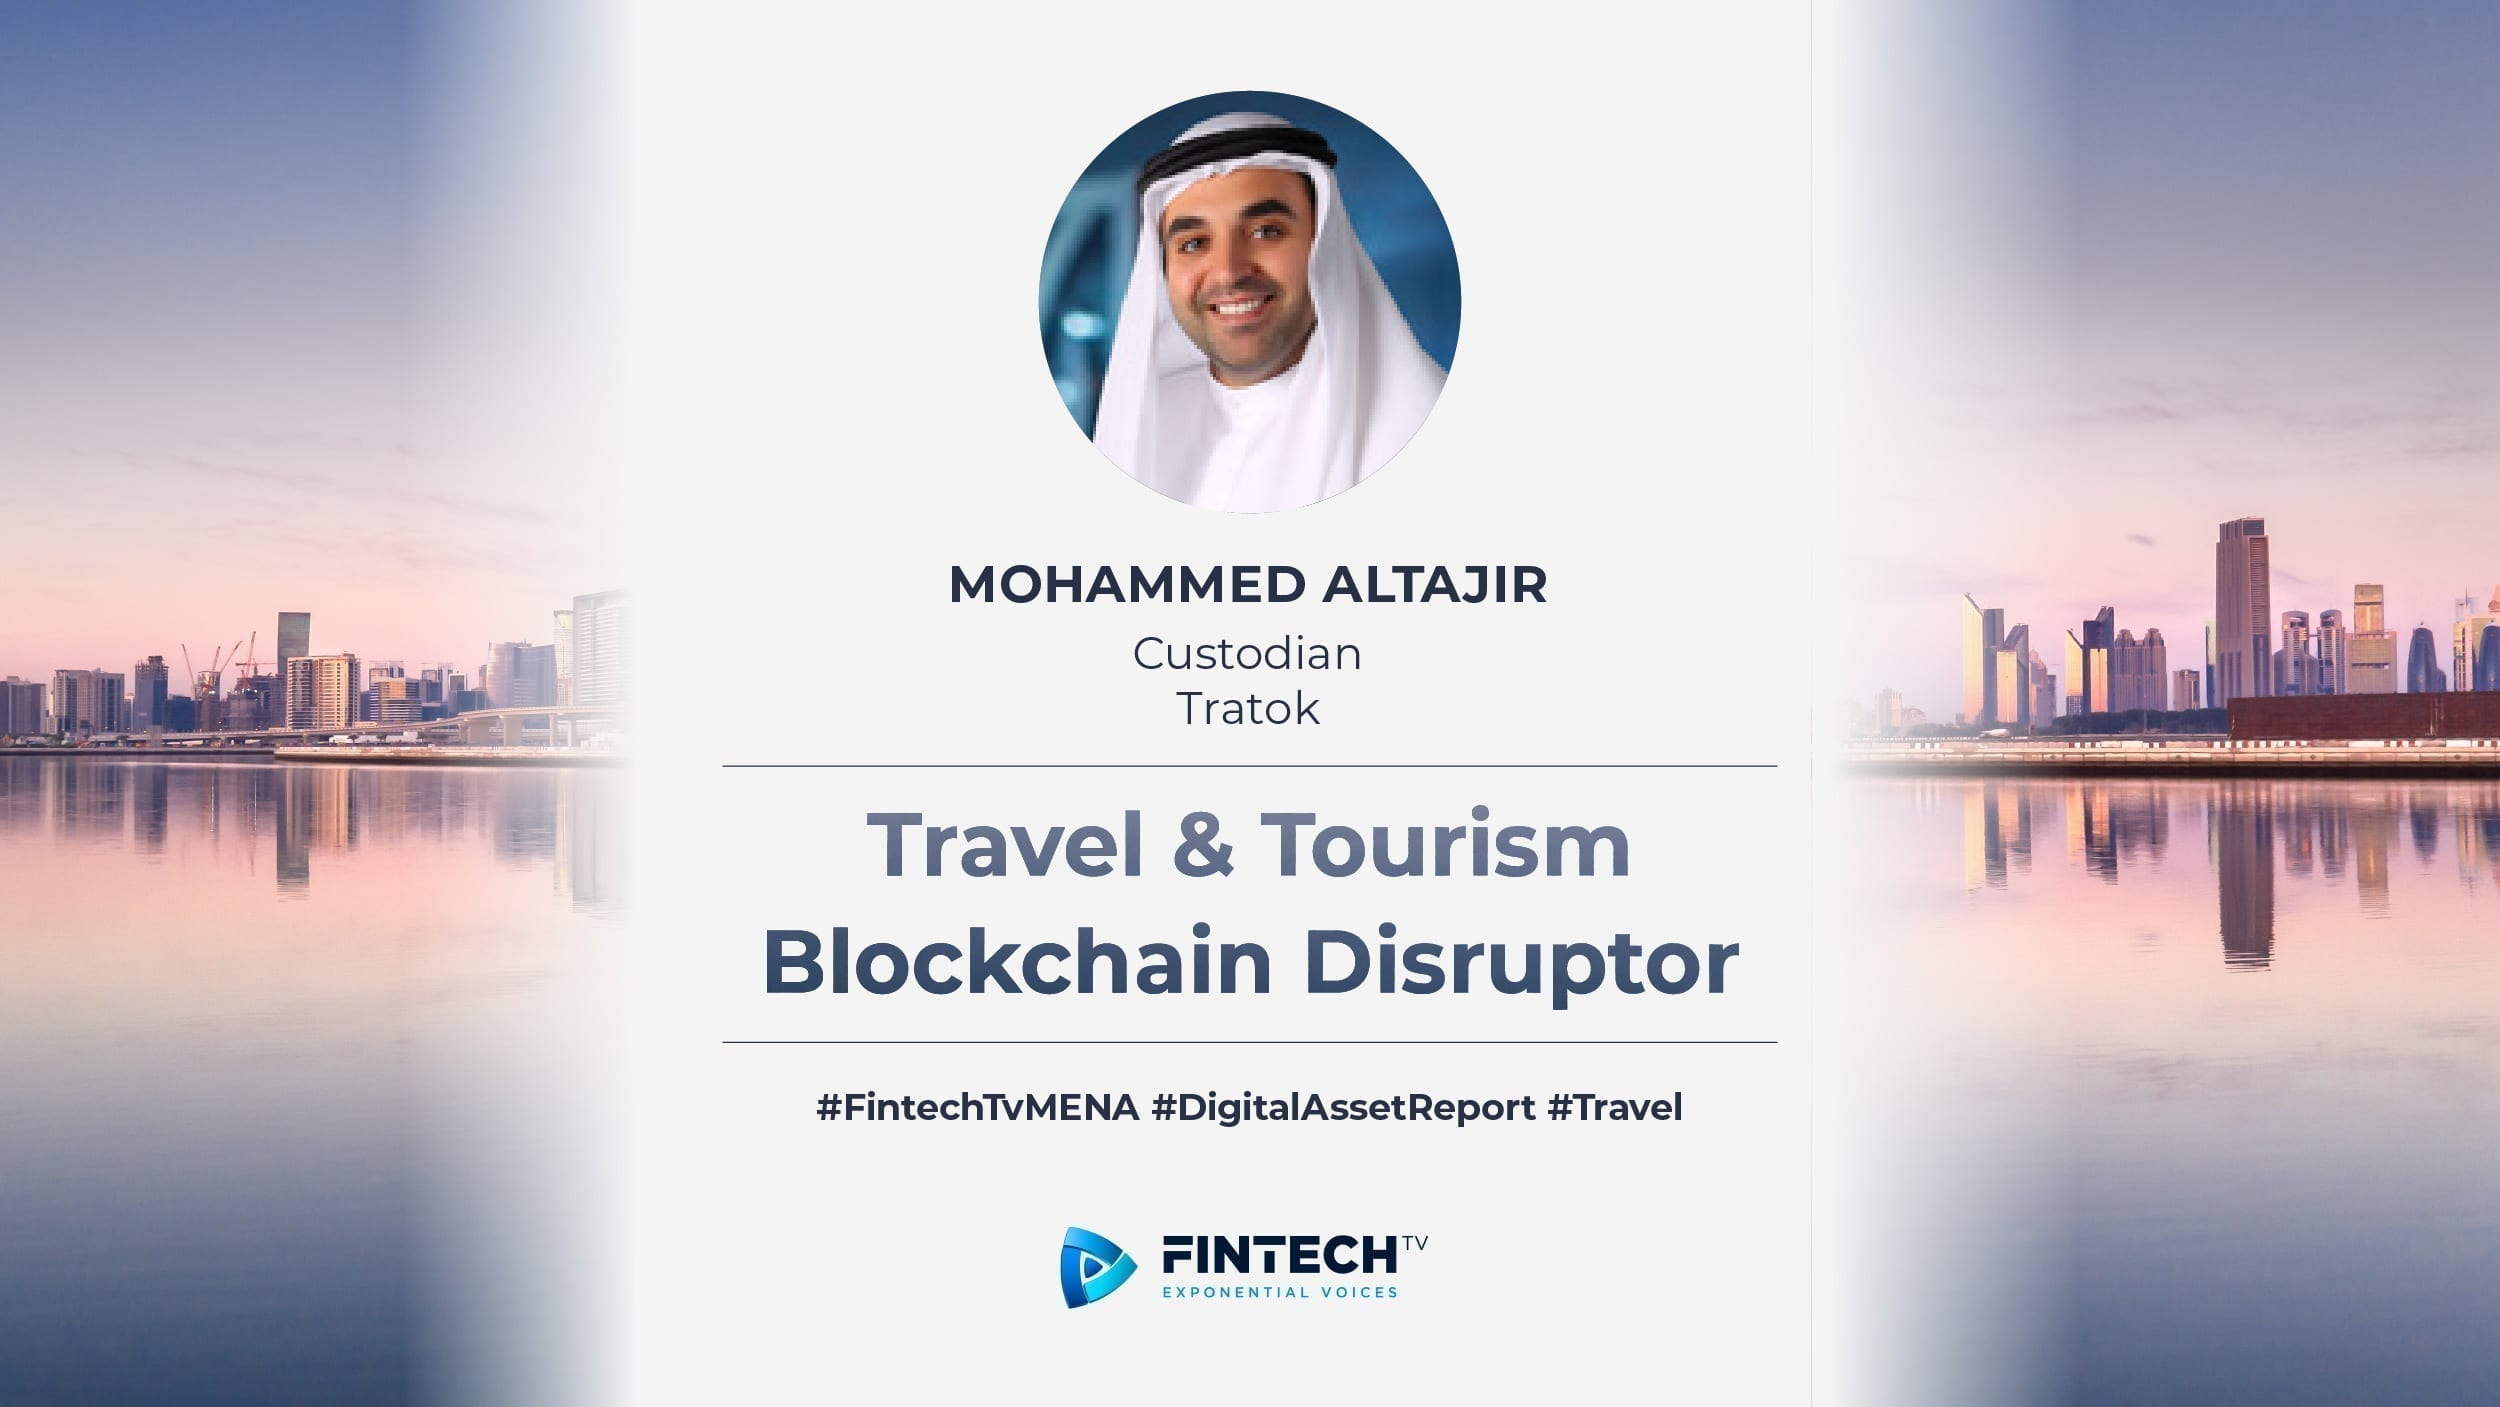 Travel & Tourism Blockchain Disruption